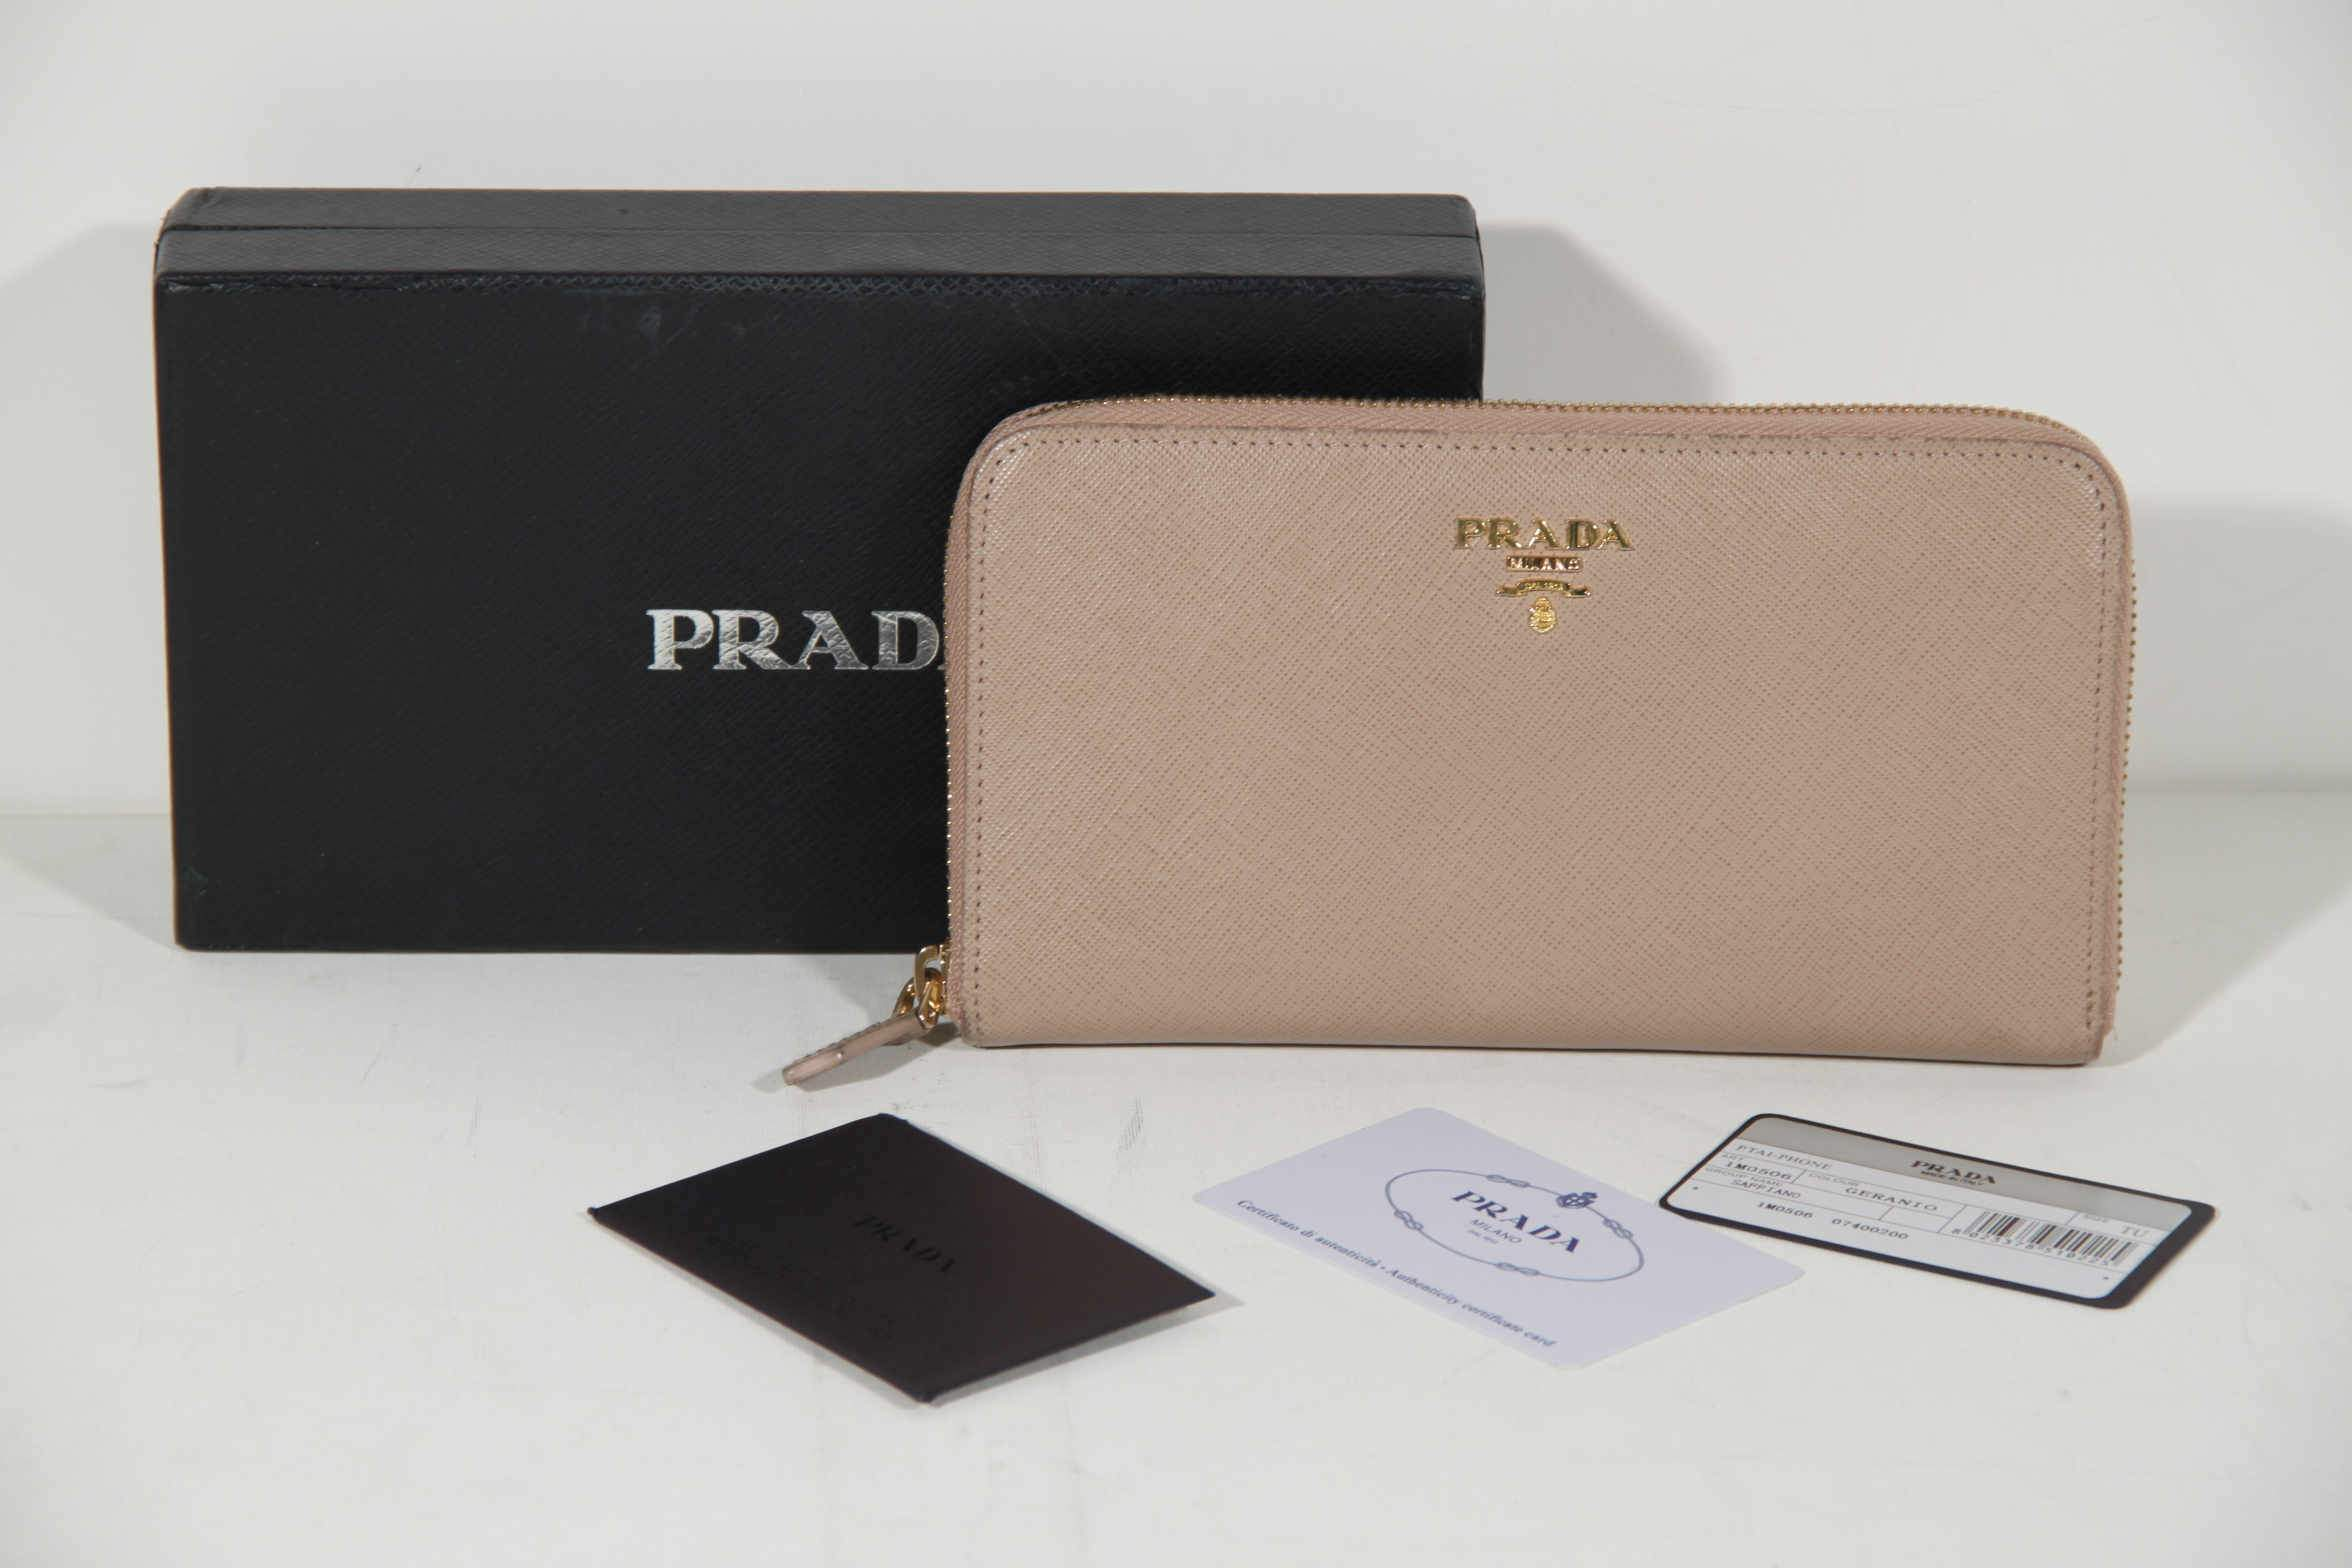 3c56631e26a It is possible that the Prada accessory you are about to purchase will not  come with these accessories. We come across many second hand accessories in  mint ...